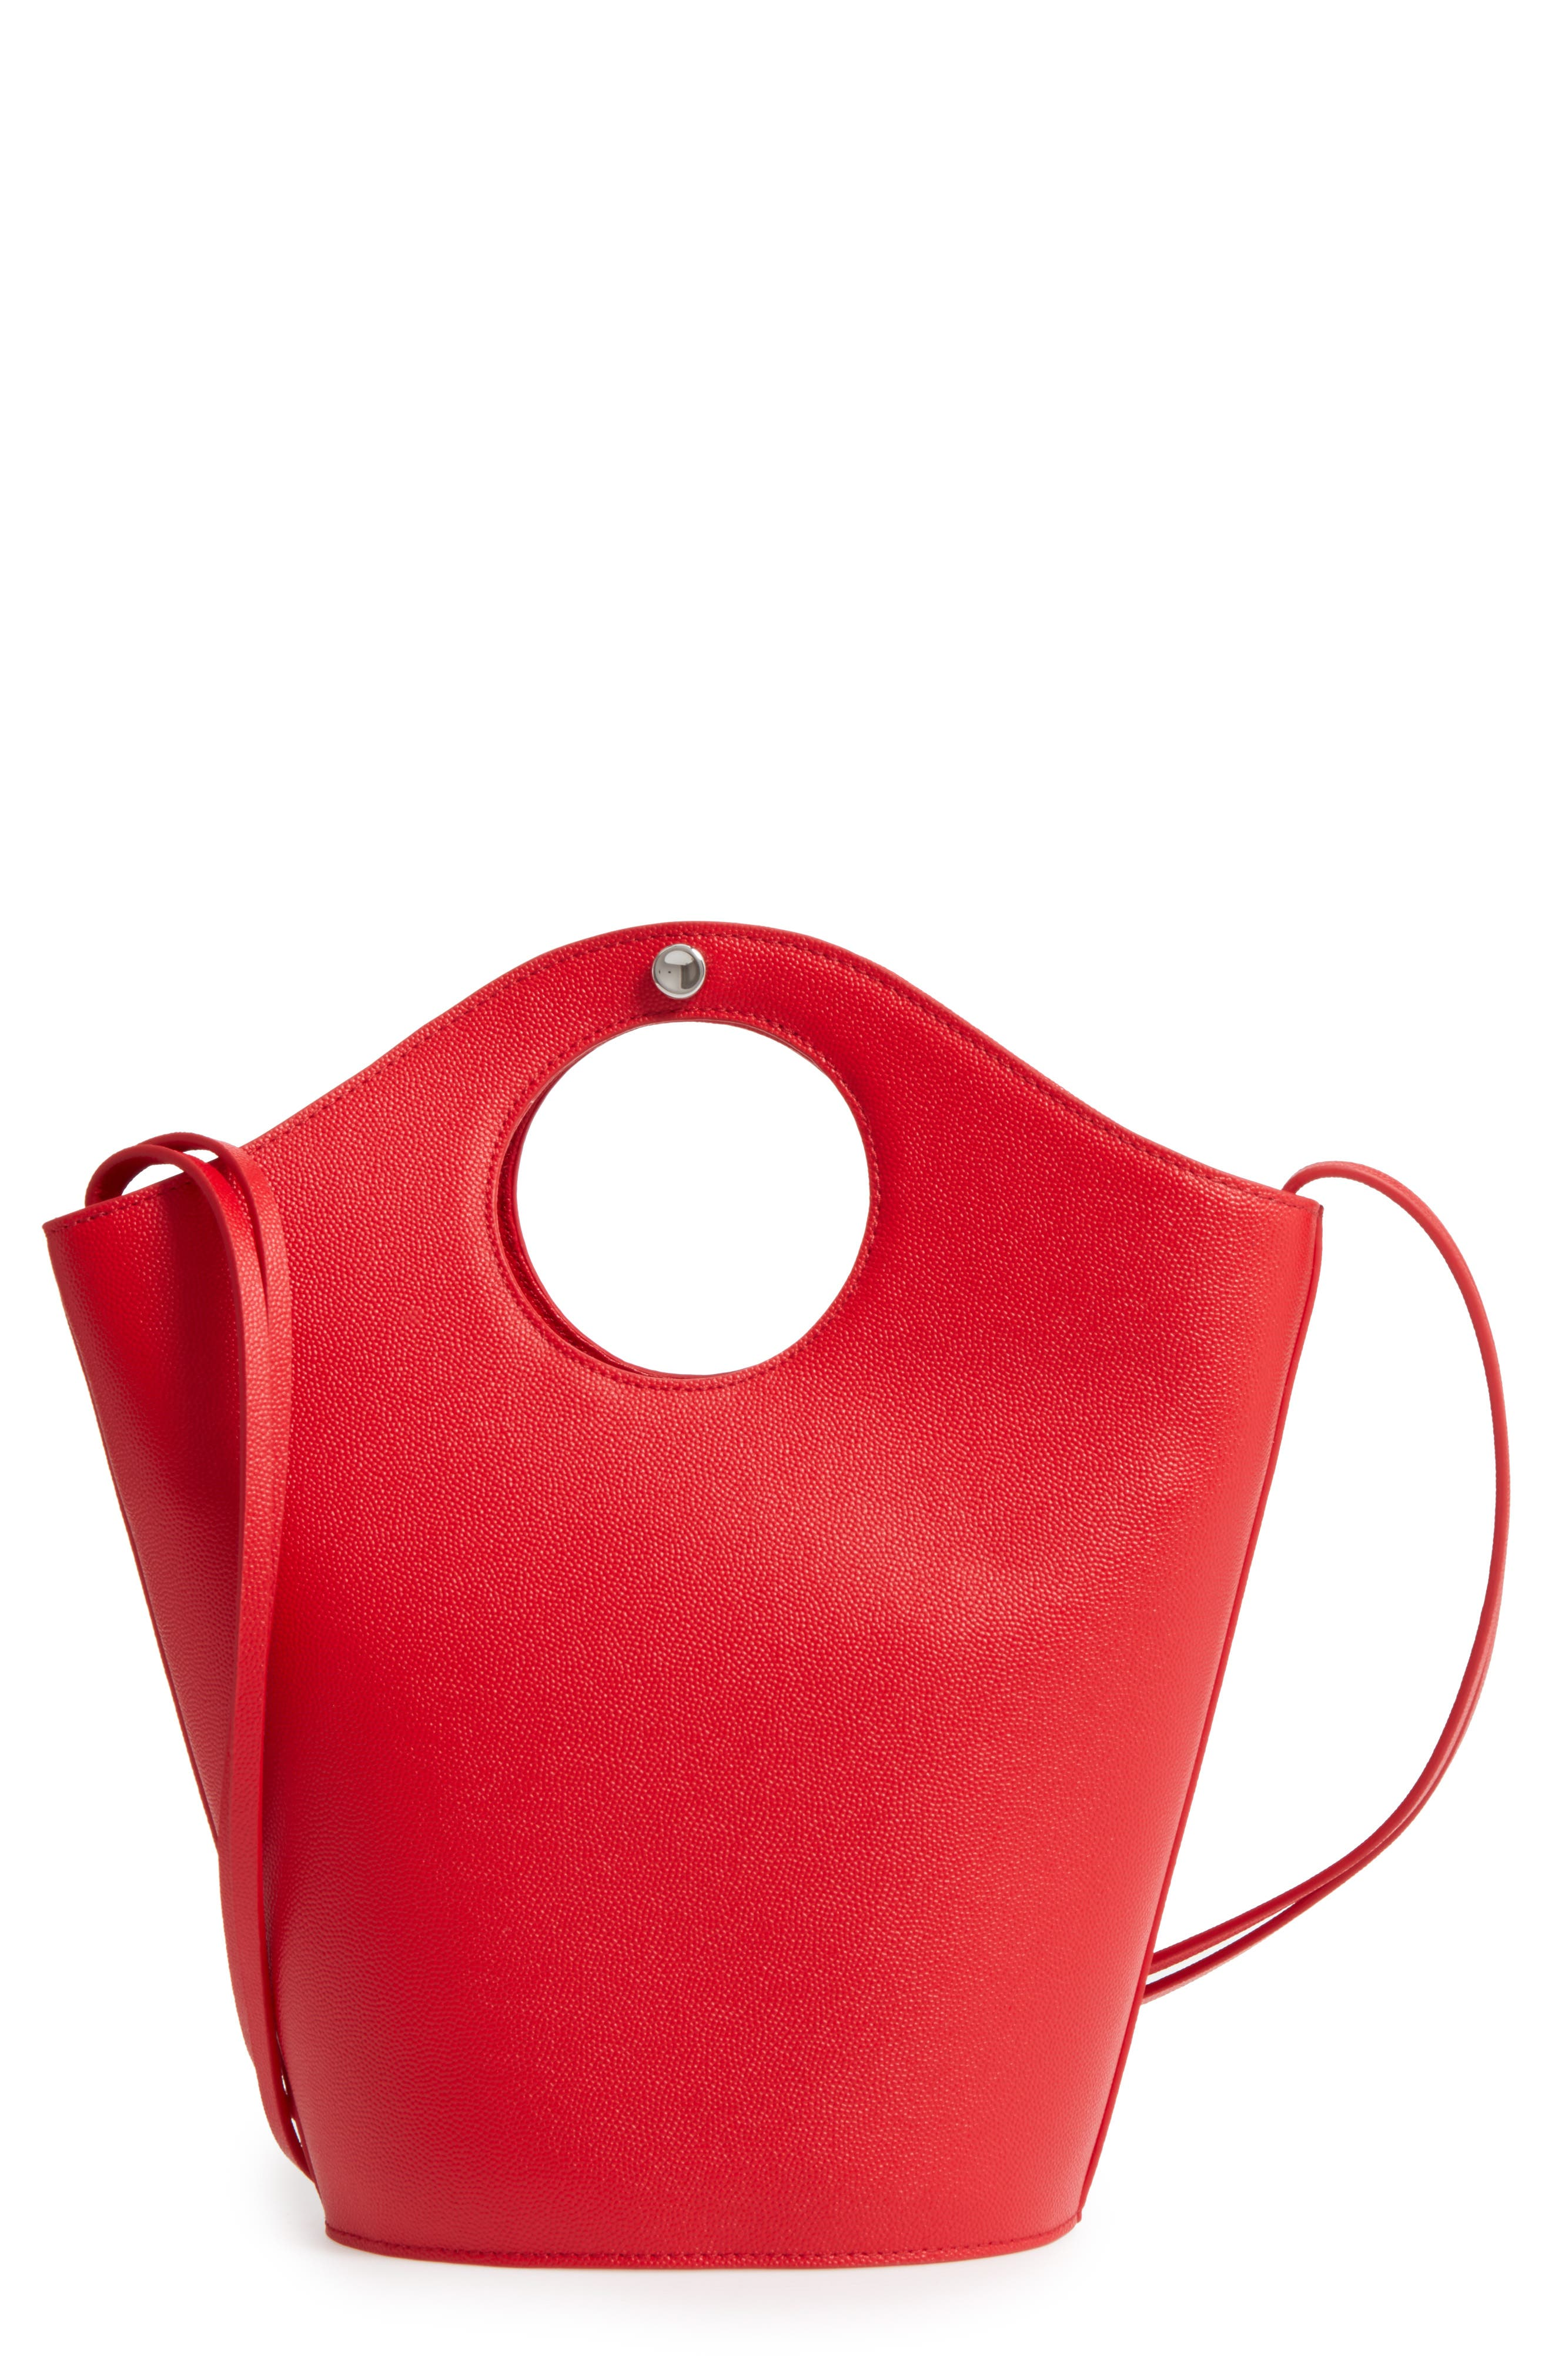 Small Market Leather Shopper,                         Main,                         color, Red